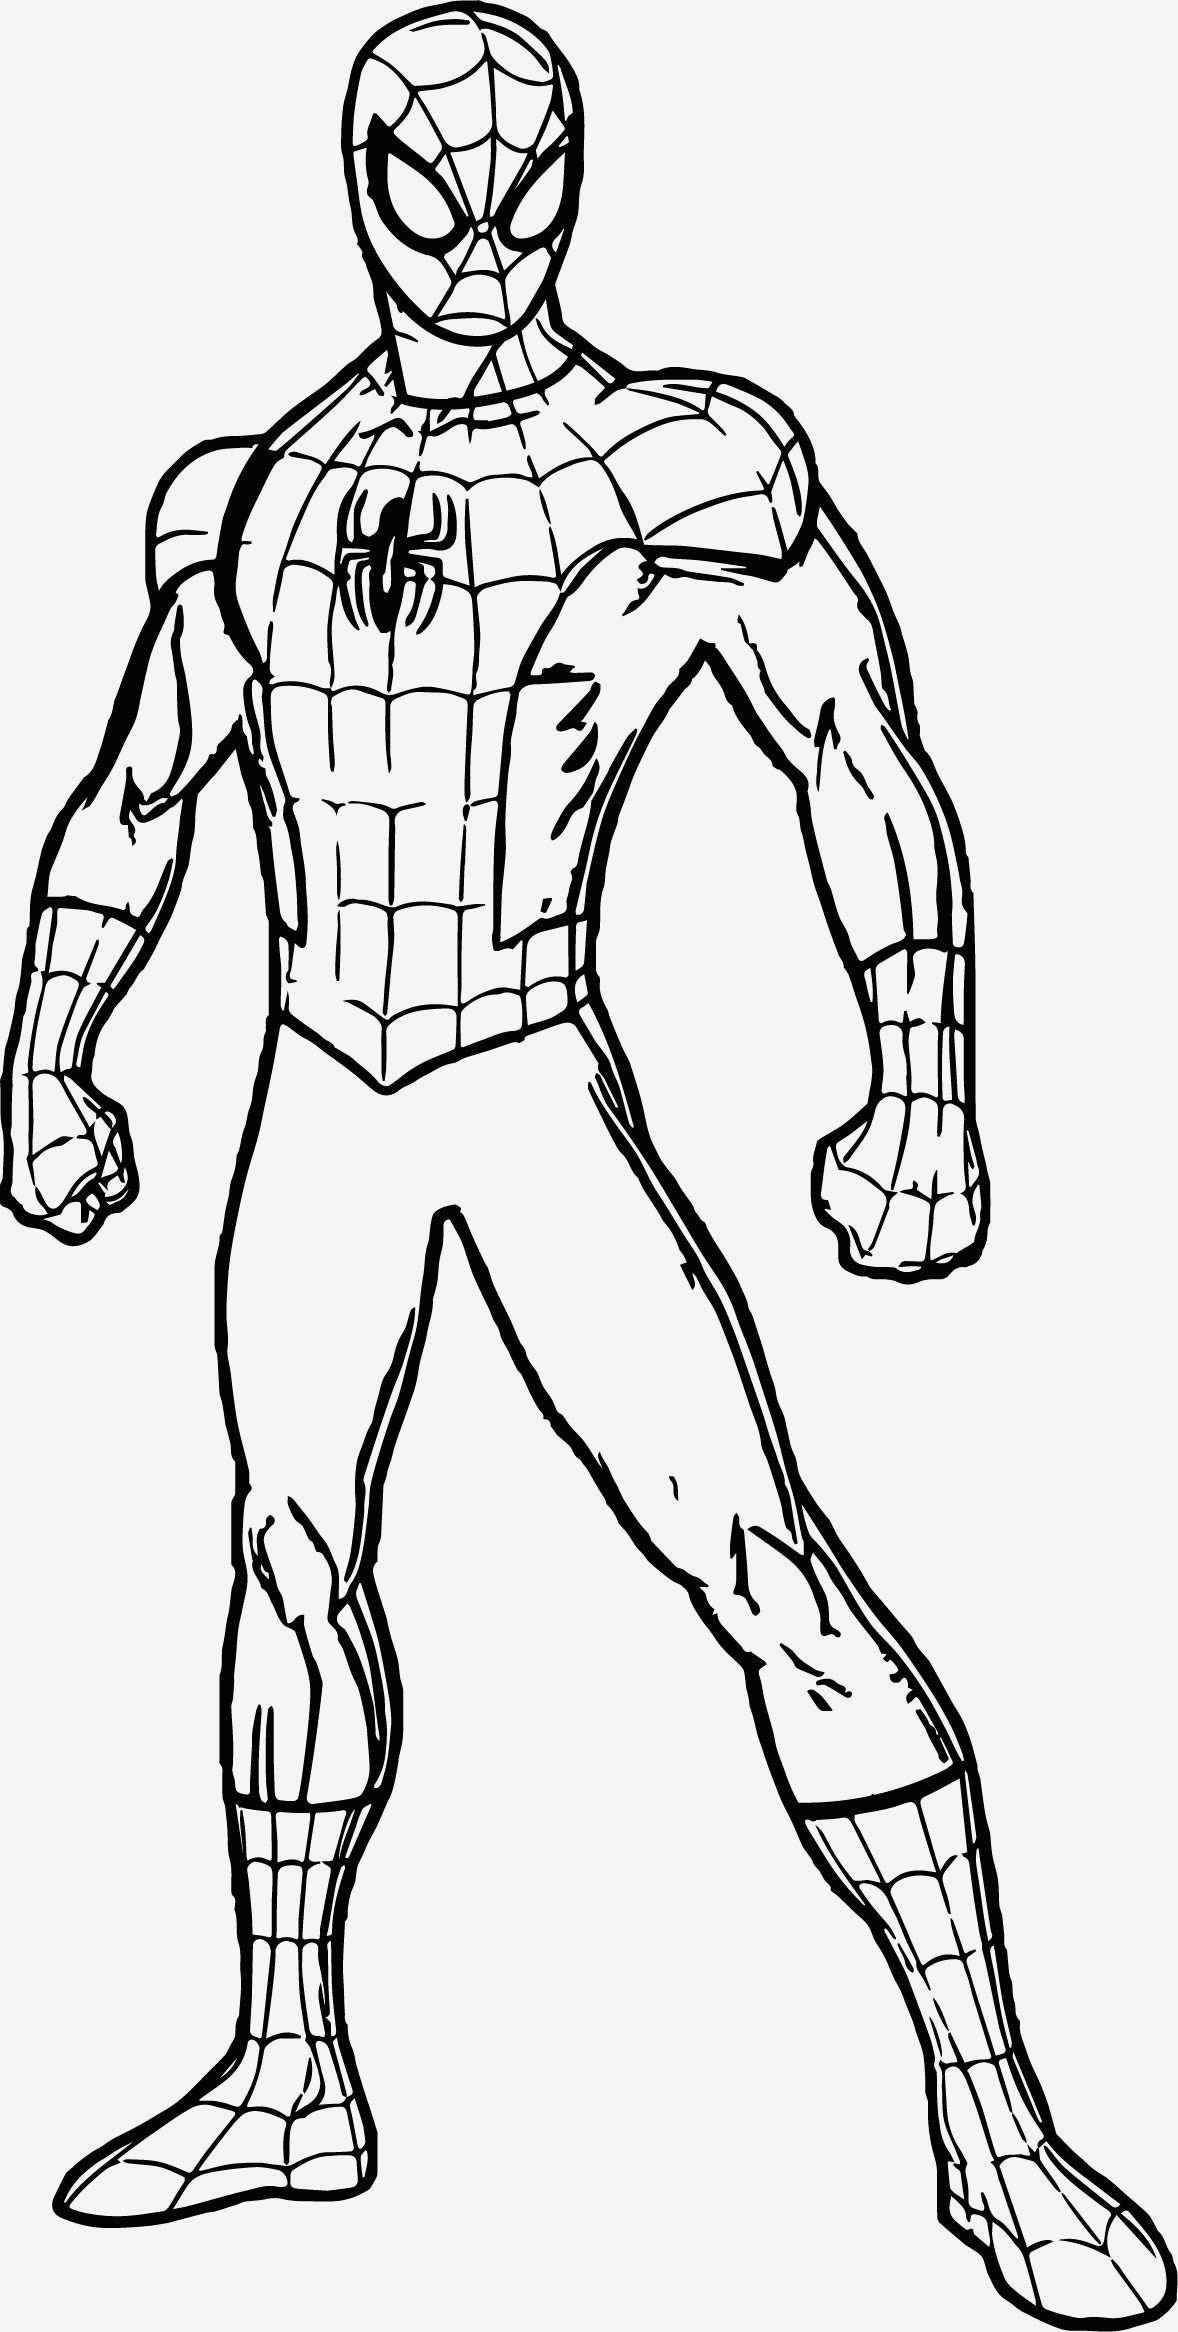 Marvelous Image Of Free Spiderman Coloring Pages Superhero